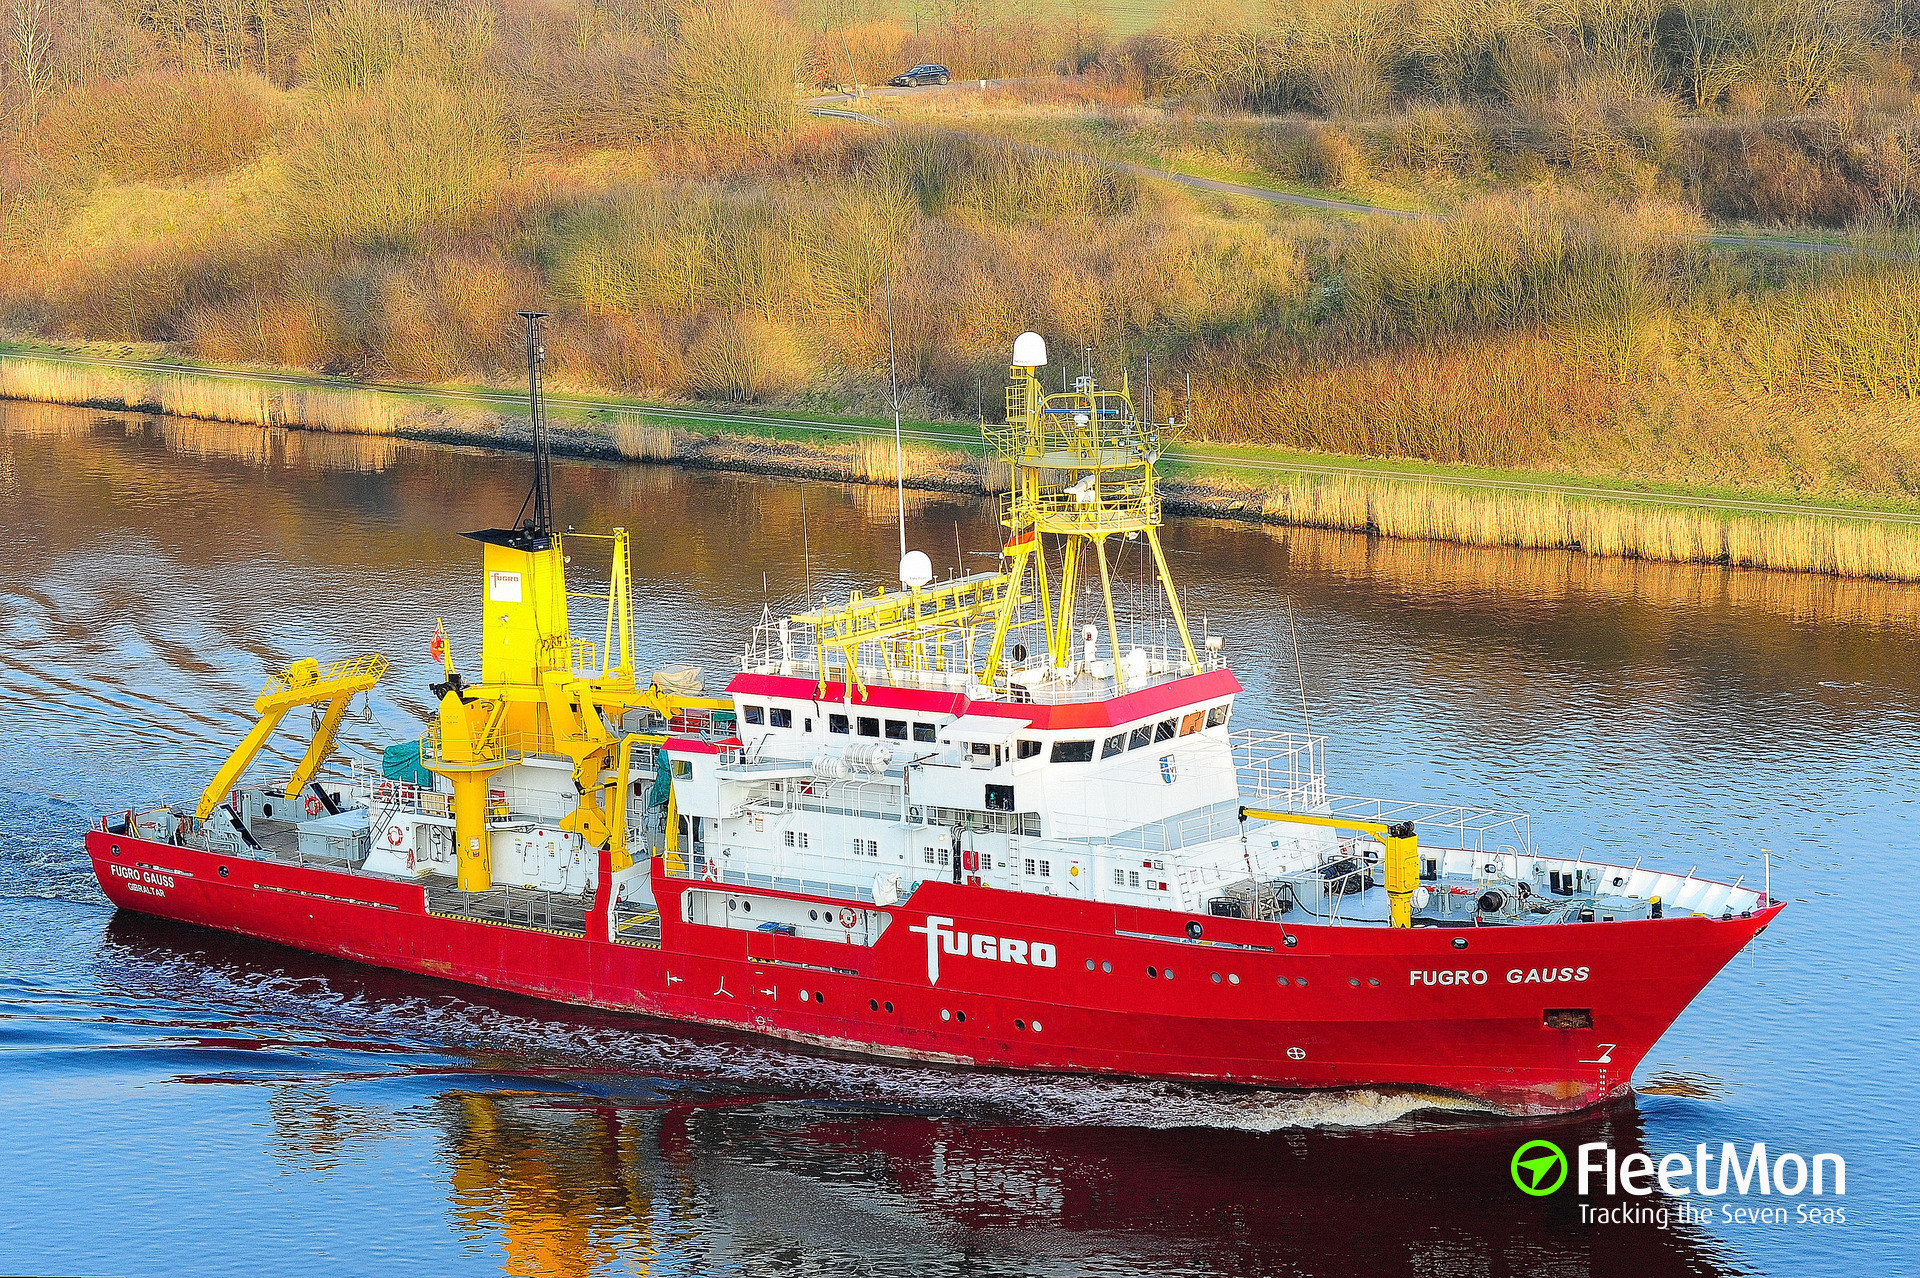 Gps Fleet Tracking Pricing >> FUGRO GAUSS (Research ship) IMO 7824883